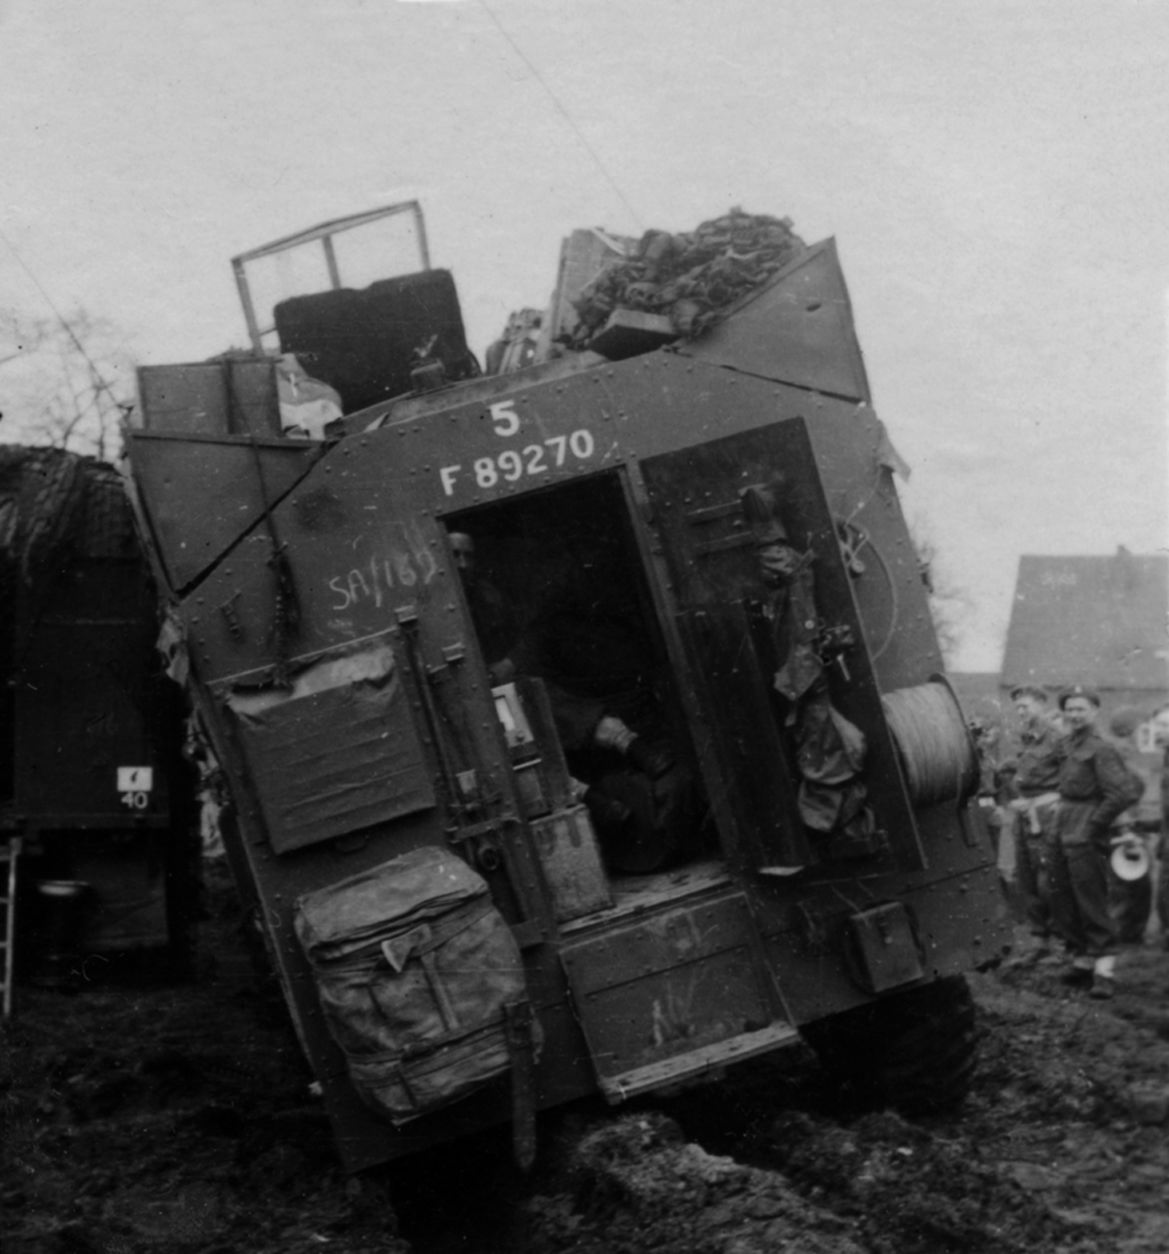 With a Division HQ vehicle behind it (AoS 40), No 5 command vehicle, denoting Divsional REME, stuck in some mud. The Divisional Artillery vehicle was No 3.